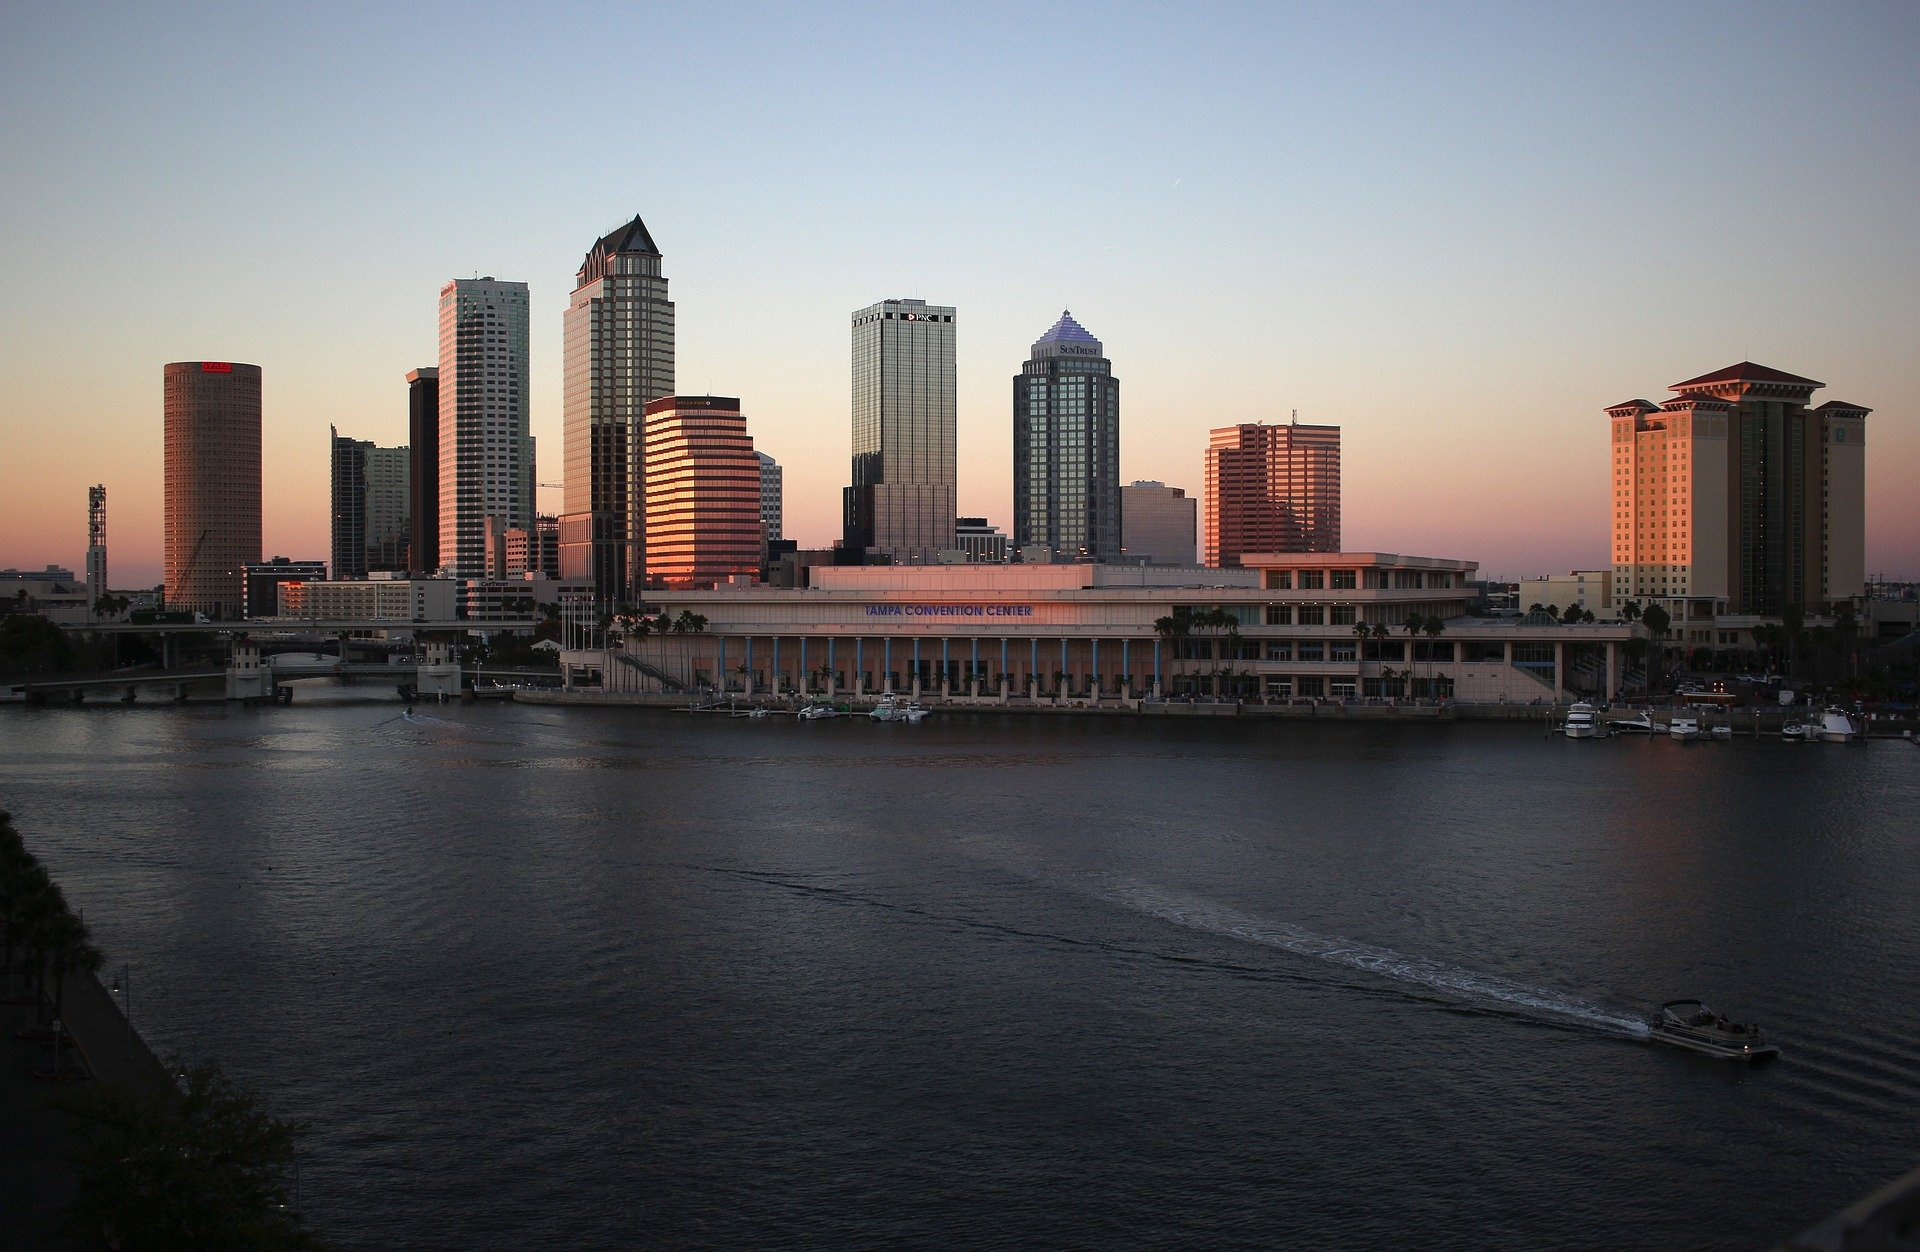 What are some of the perks when buying Tampa?